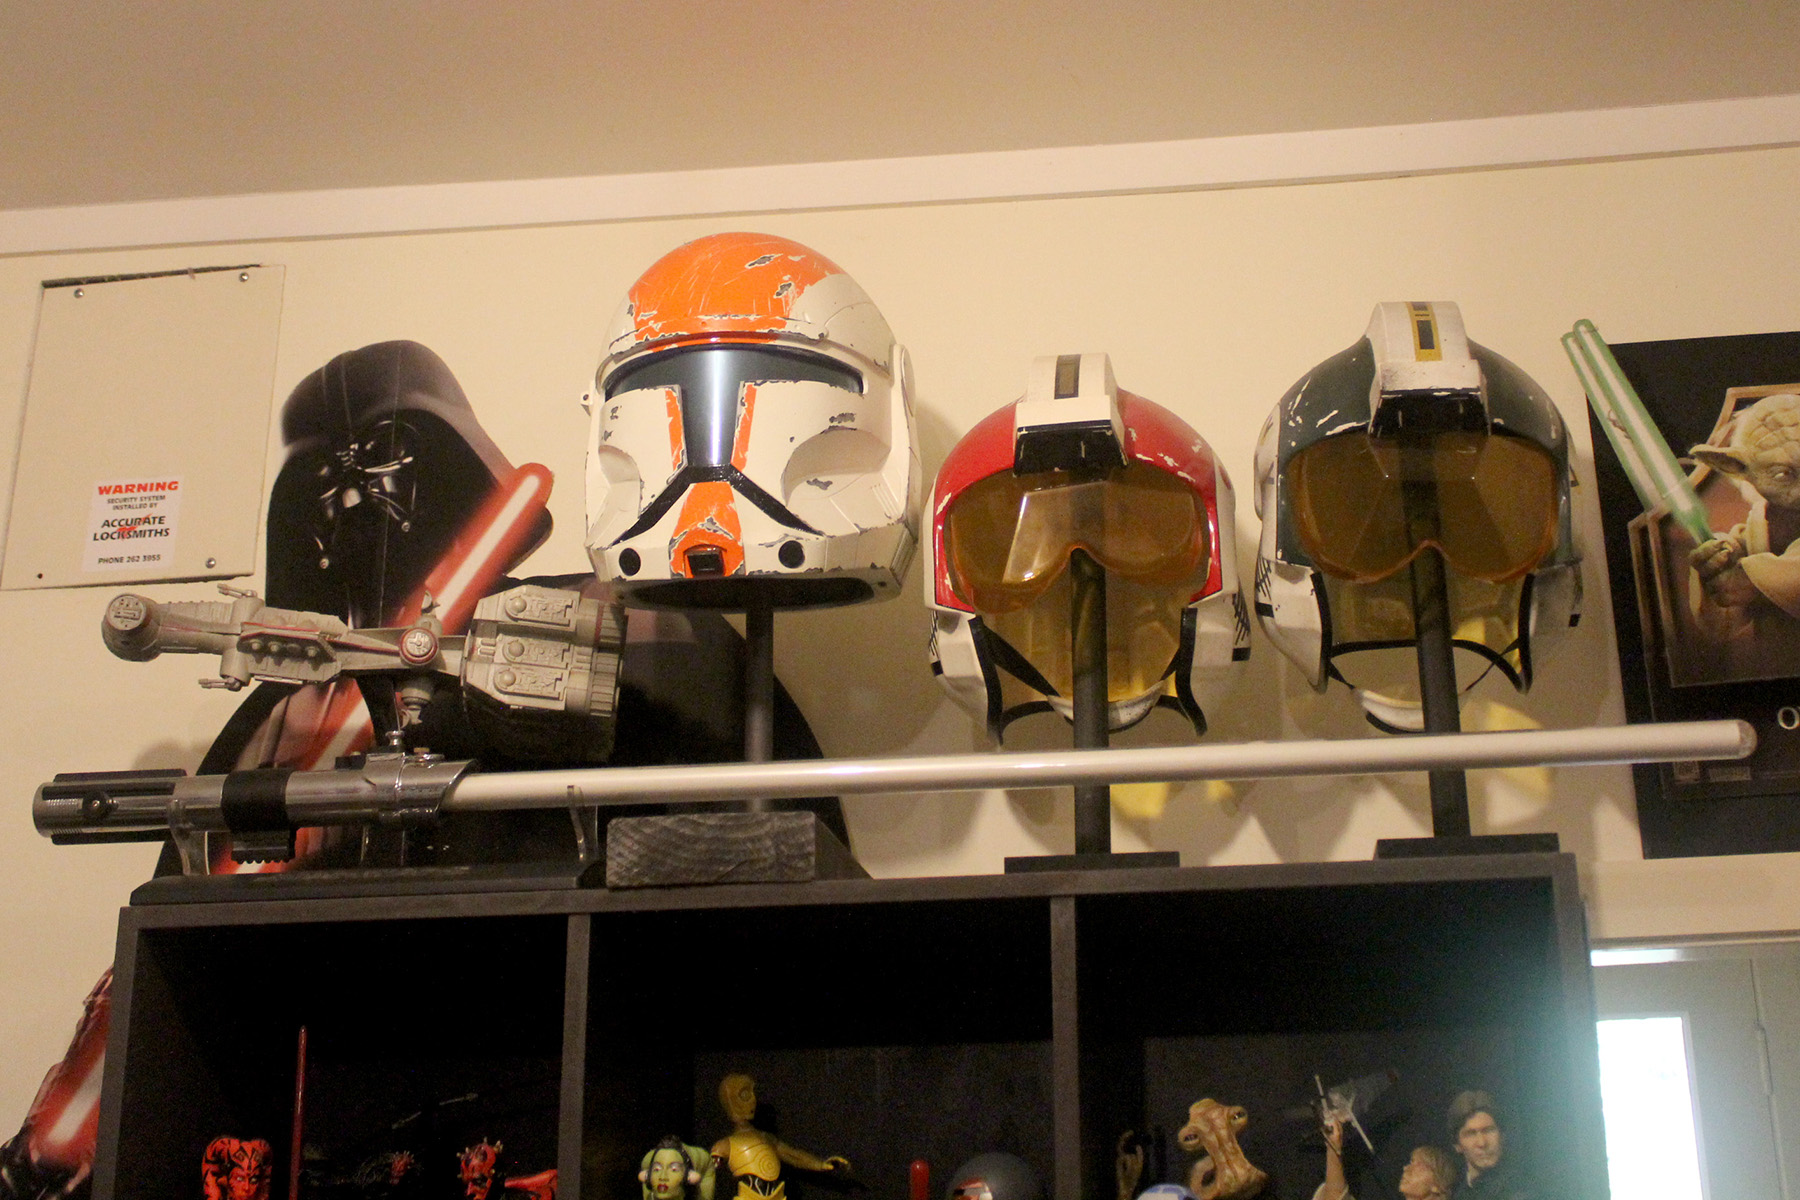 Helmets and lightsaber